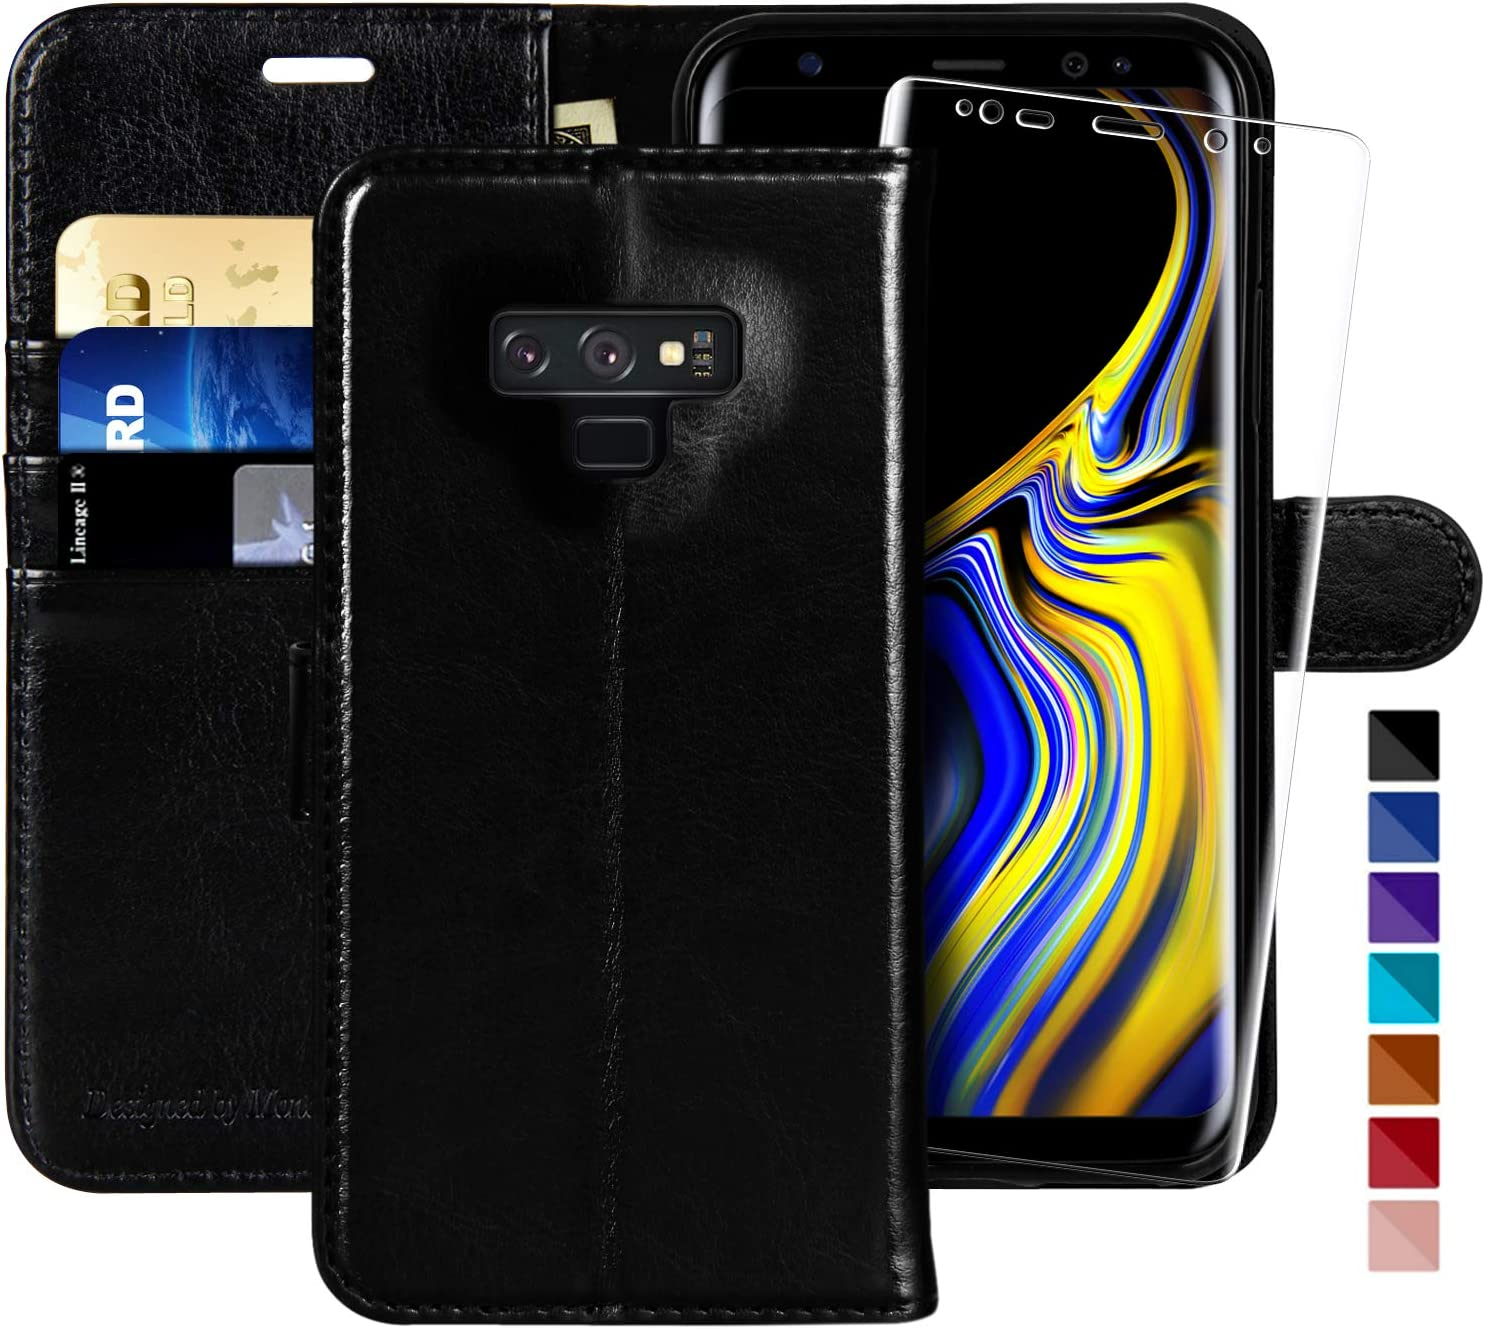 Galaxy Note 8 Wallet Case, 6.3 inch,MONASAY [Included Screen Protector] Flip Folio Leather Cell Phone Cover with Credit Card Holder for Samsung Galaxy Note 8